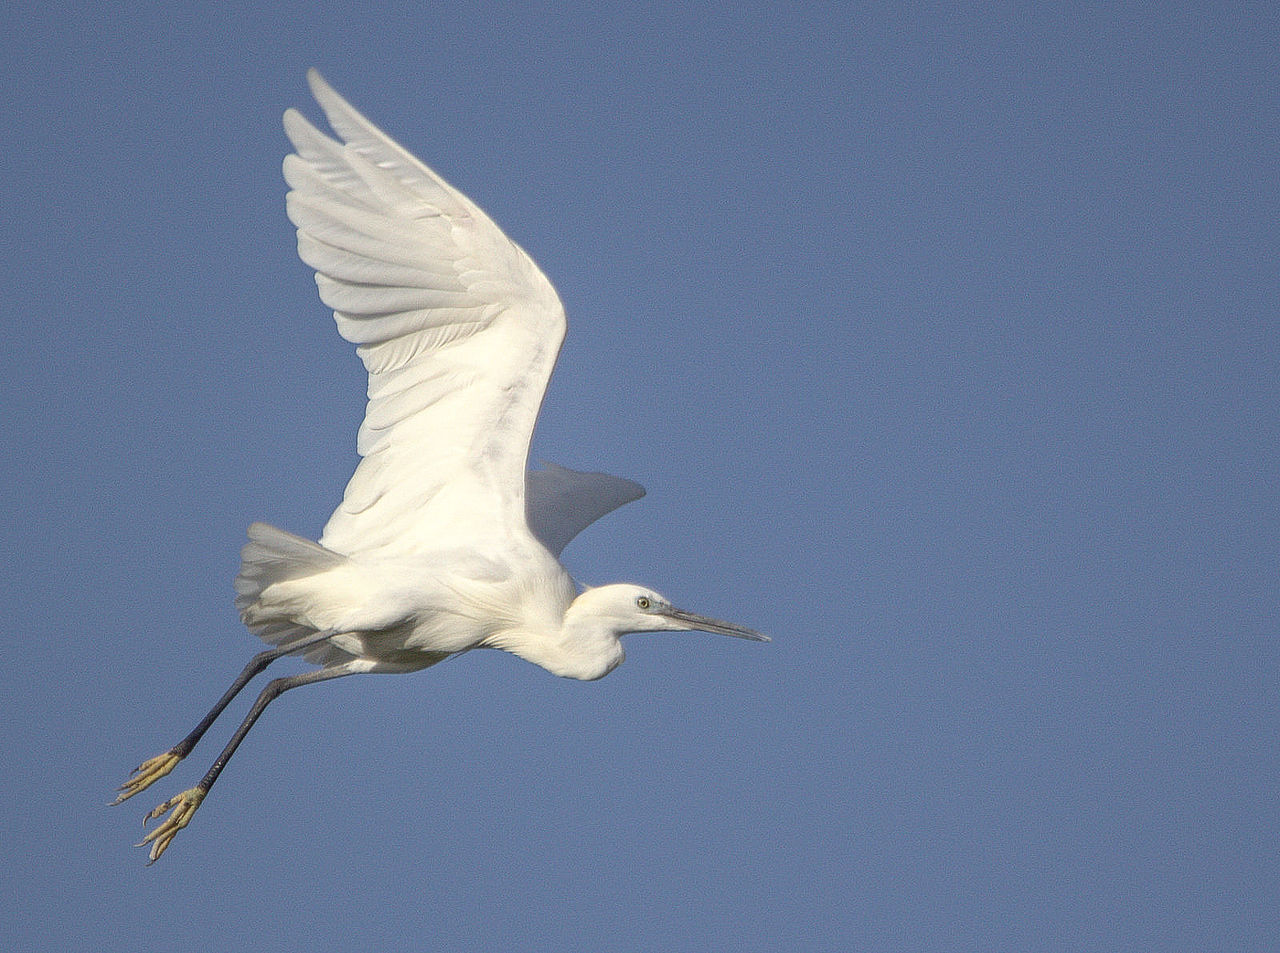 white heron question View notes - white heron essay from buad 1305 at sam houston state university an analysis of a white heron sarah orne jewetts short story, a white heron centers on a few days in the life of sylvia ask a homework question-tutors are online.